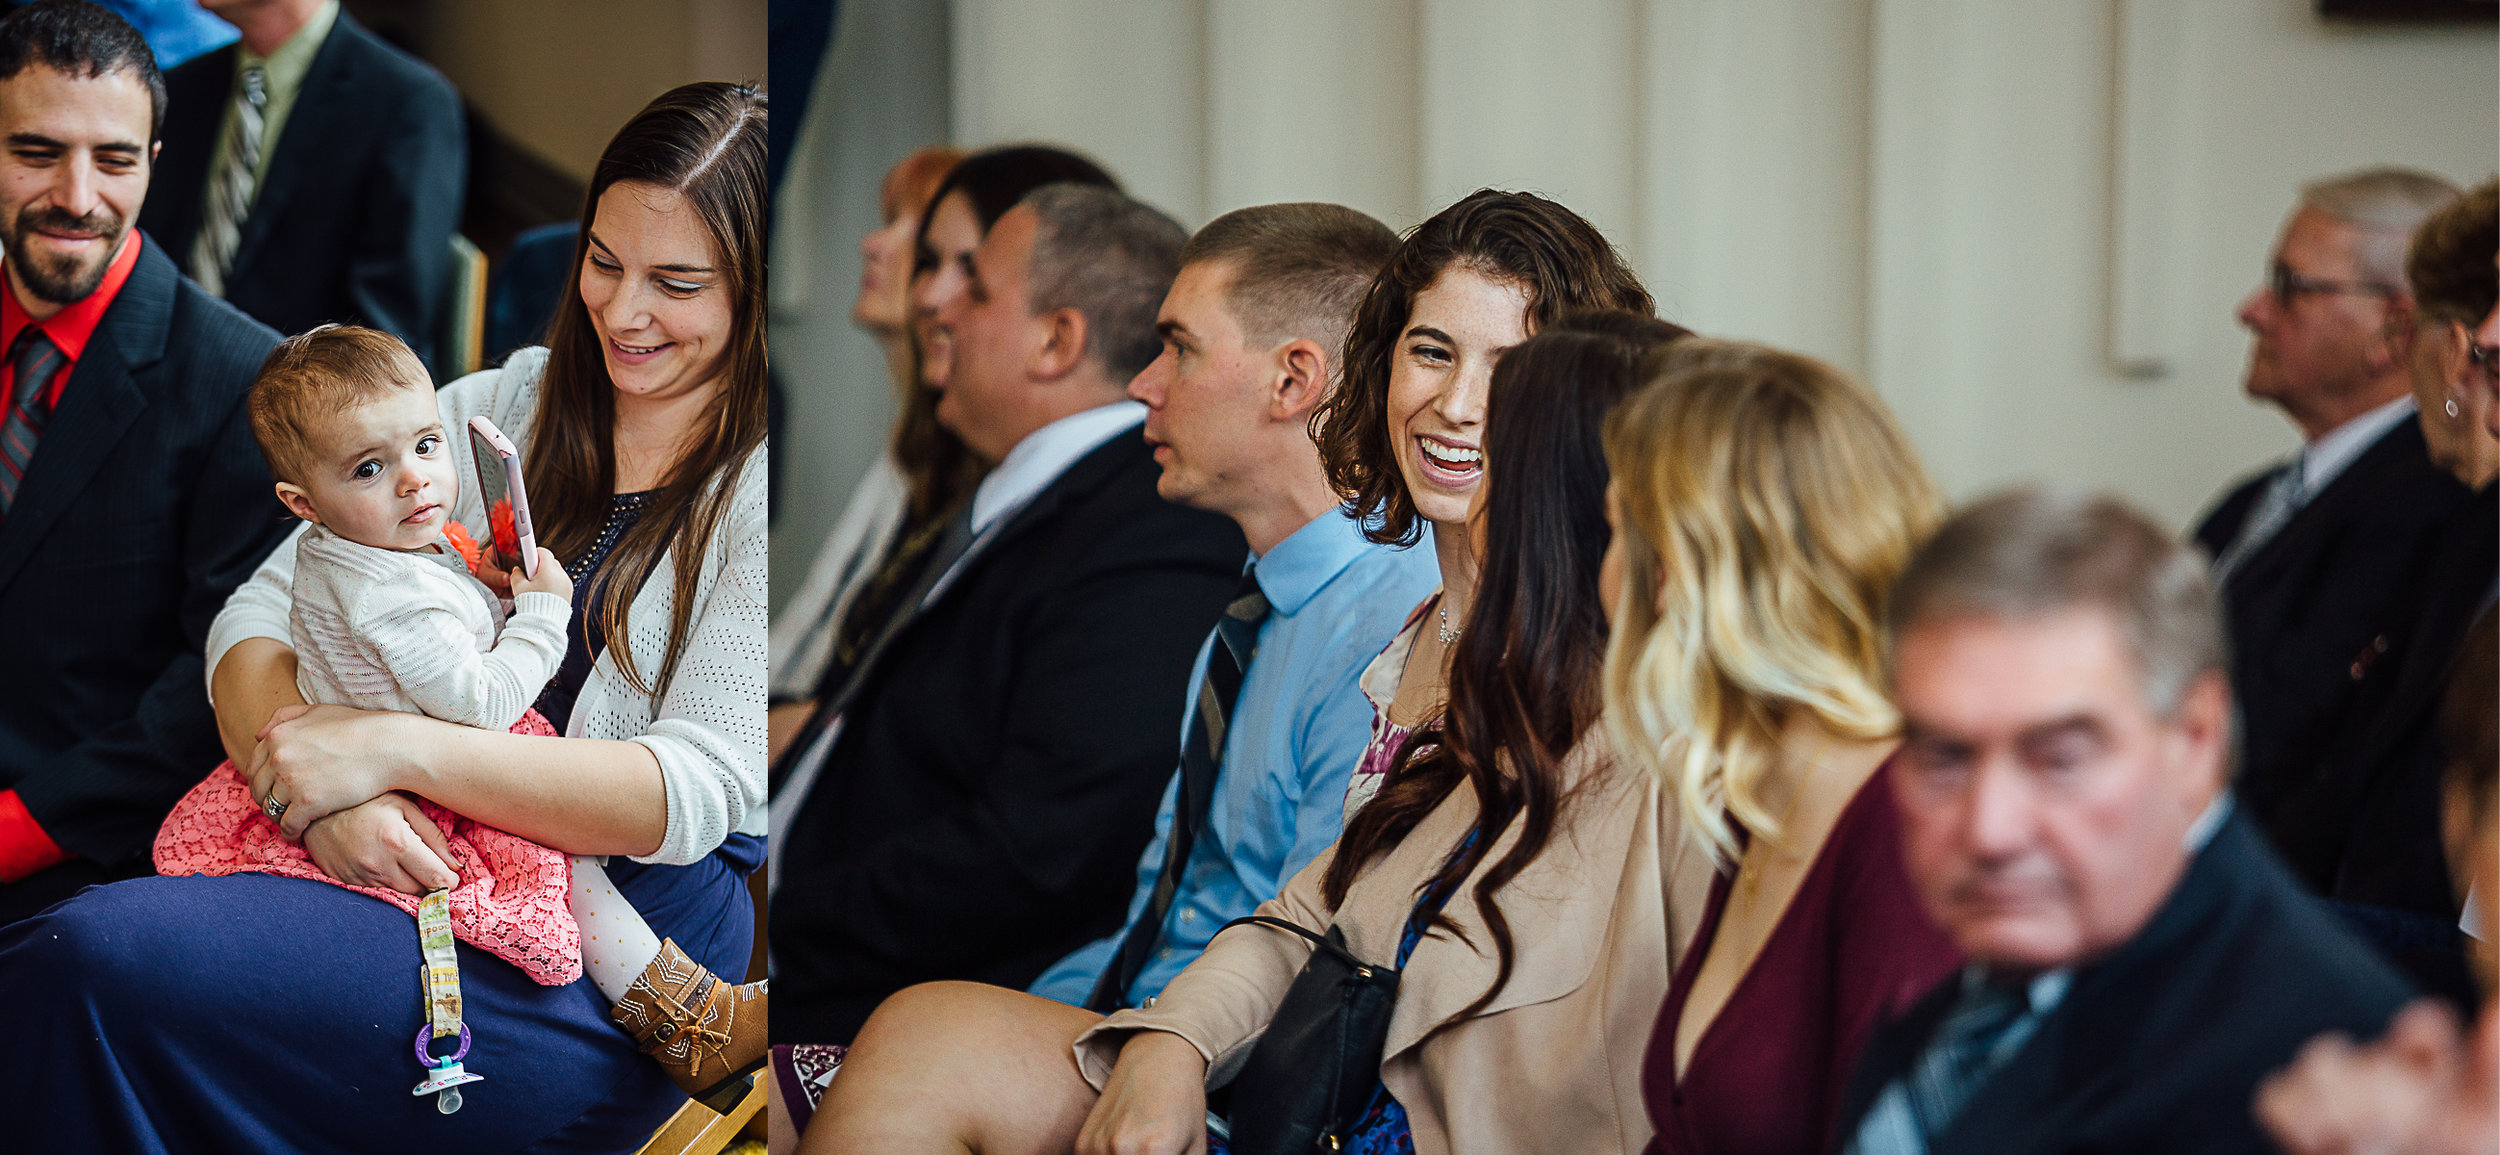 Happy Wedding Guests by Corrie Mick Photography.jpg